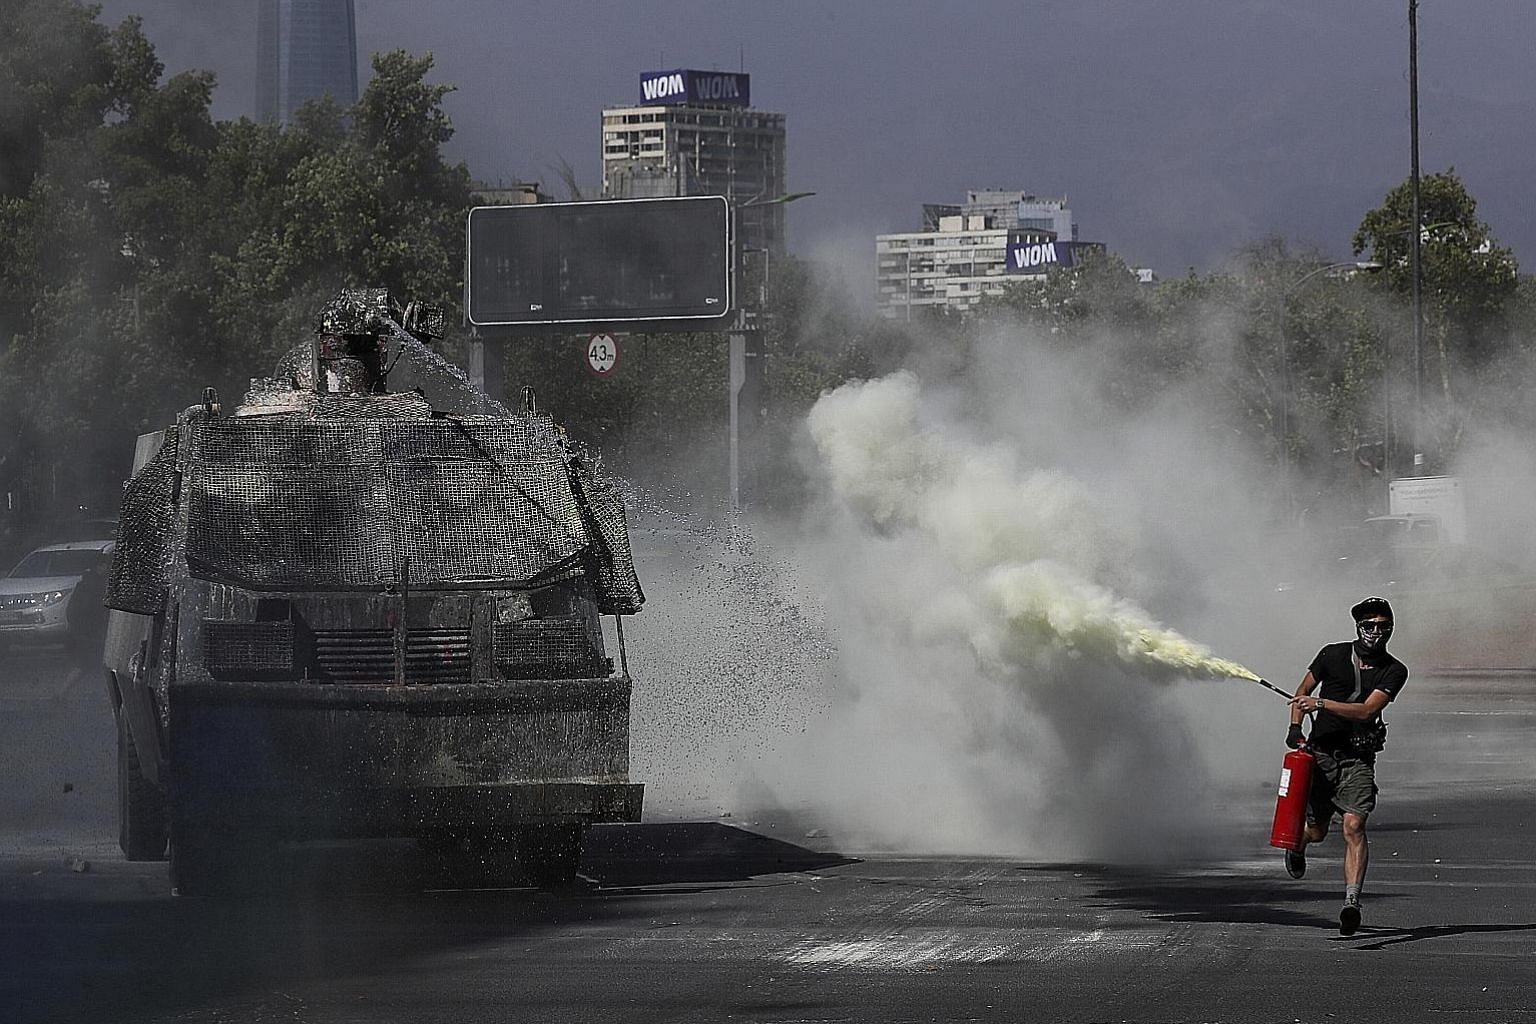 An anti-government demonstrator spraying a fire extinguisher at a police water cannon during a protest in Santiago, Chile, on Monday. Protests calling for equality and better social services have forced President Sebastian Pinera to increase benefits